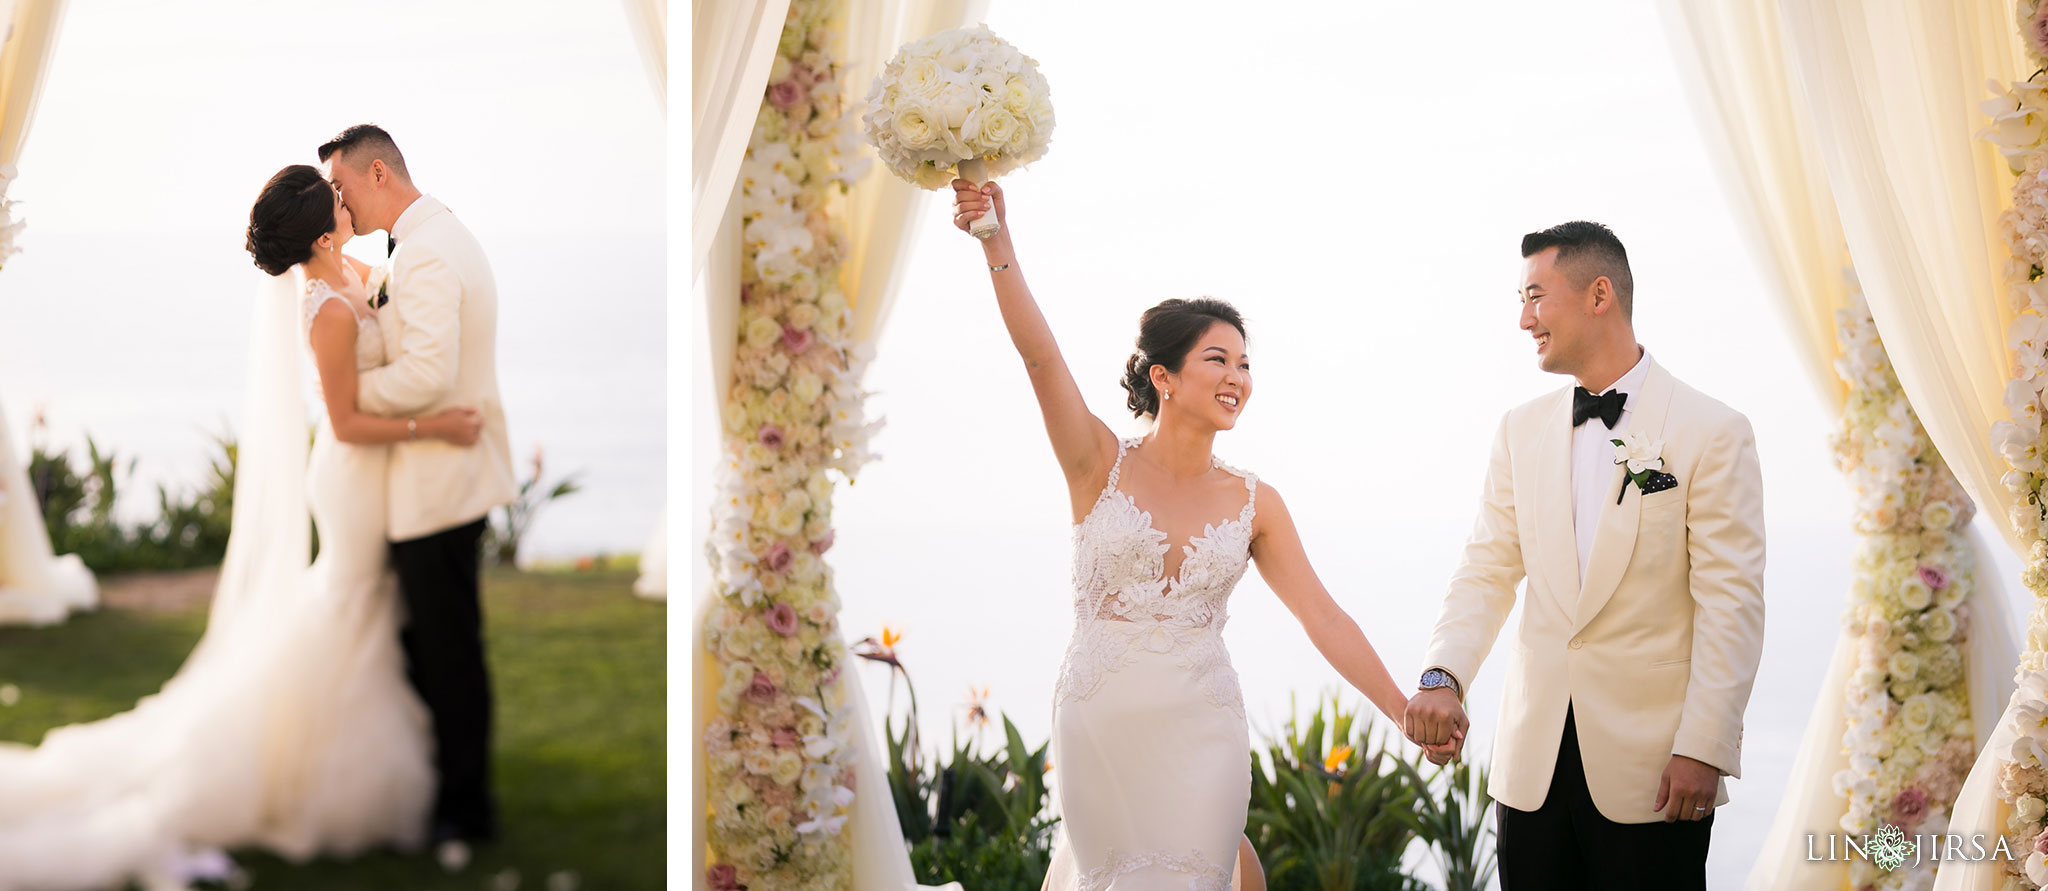 24 ritz carlton laguna niguel wedding ceremony photography